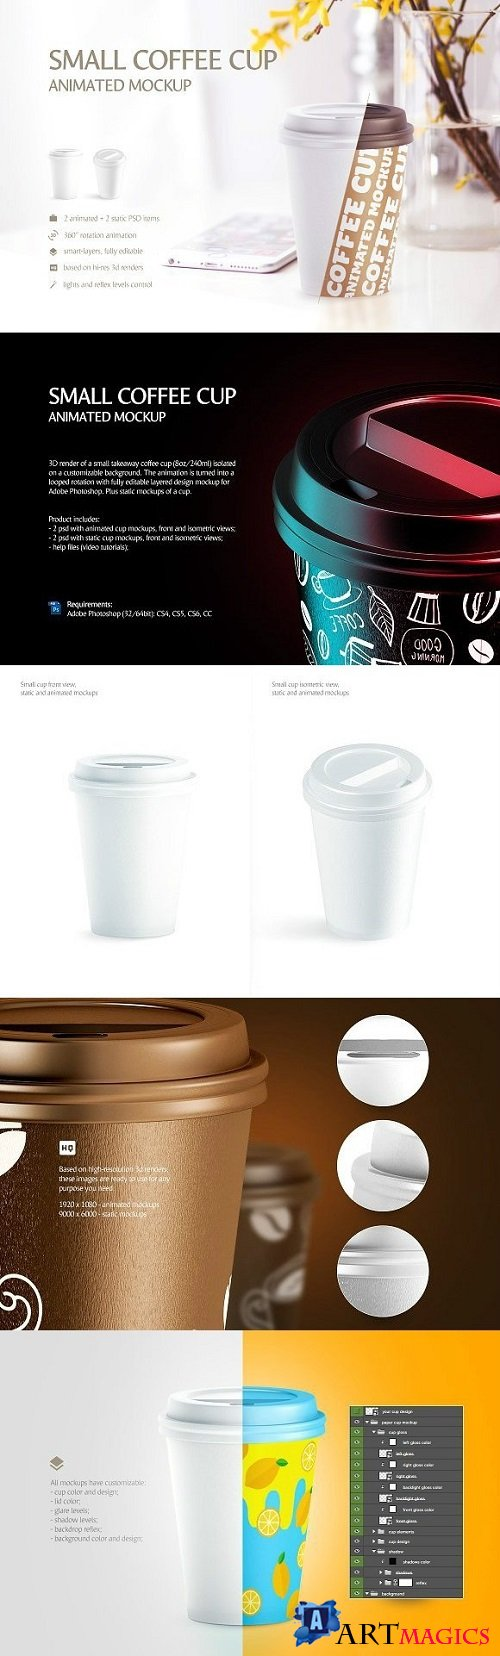 Small Coffee Cup Animated Mockup 1846179 (Full Collection)